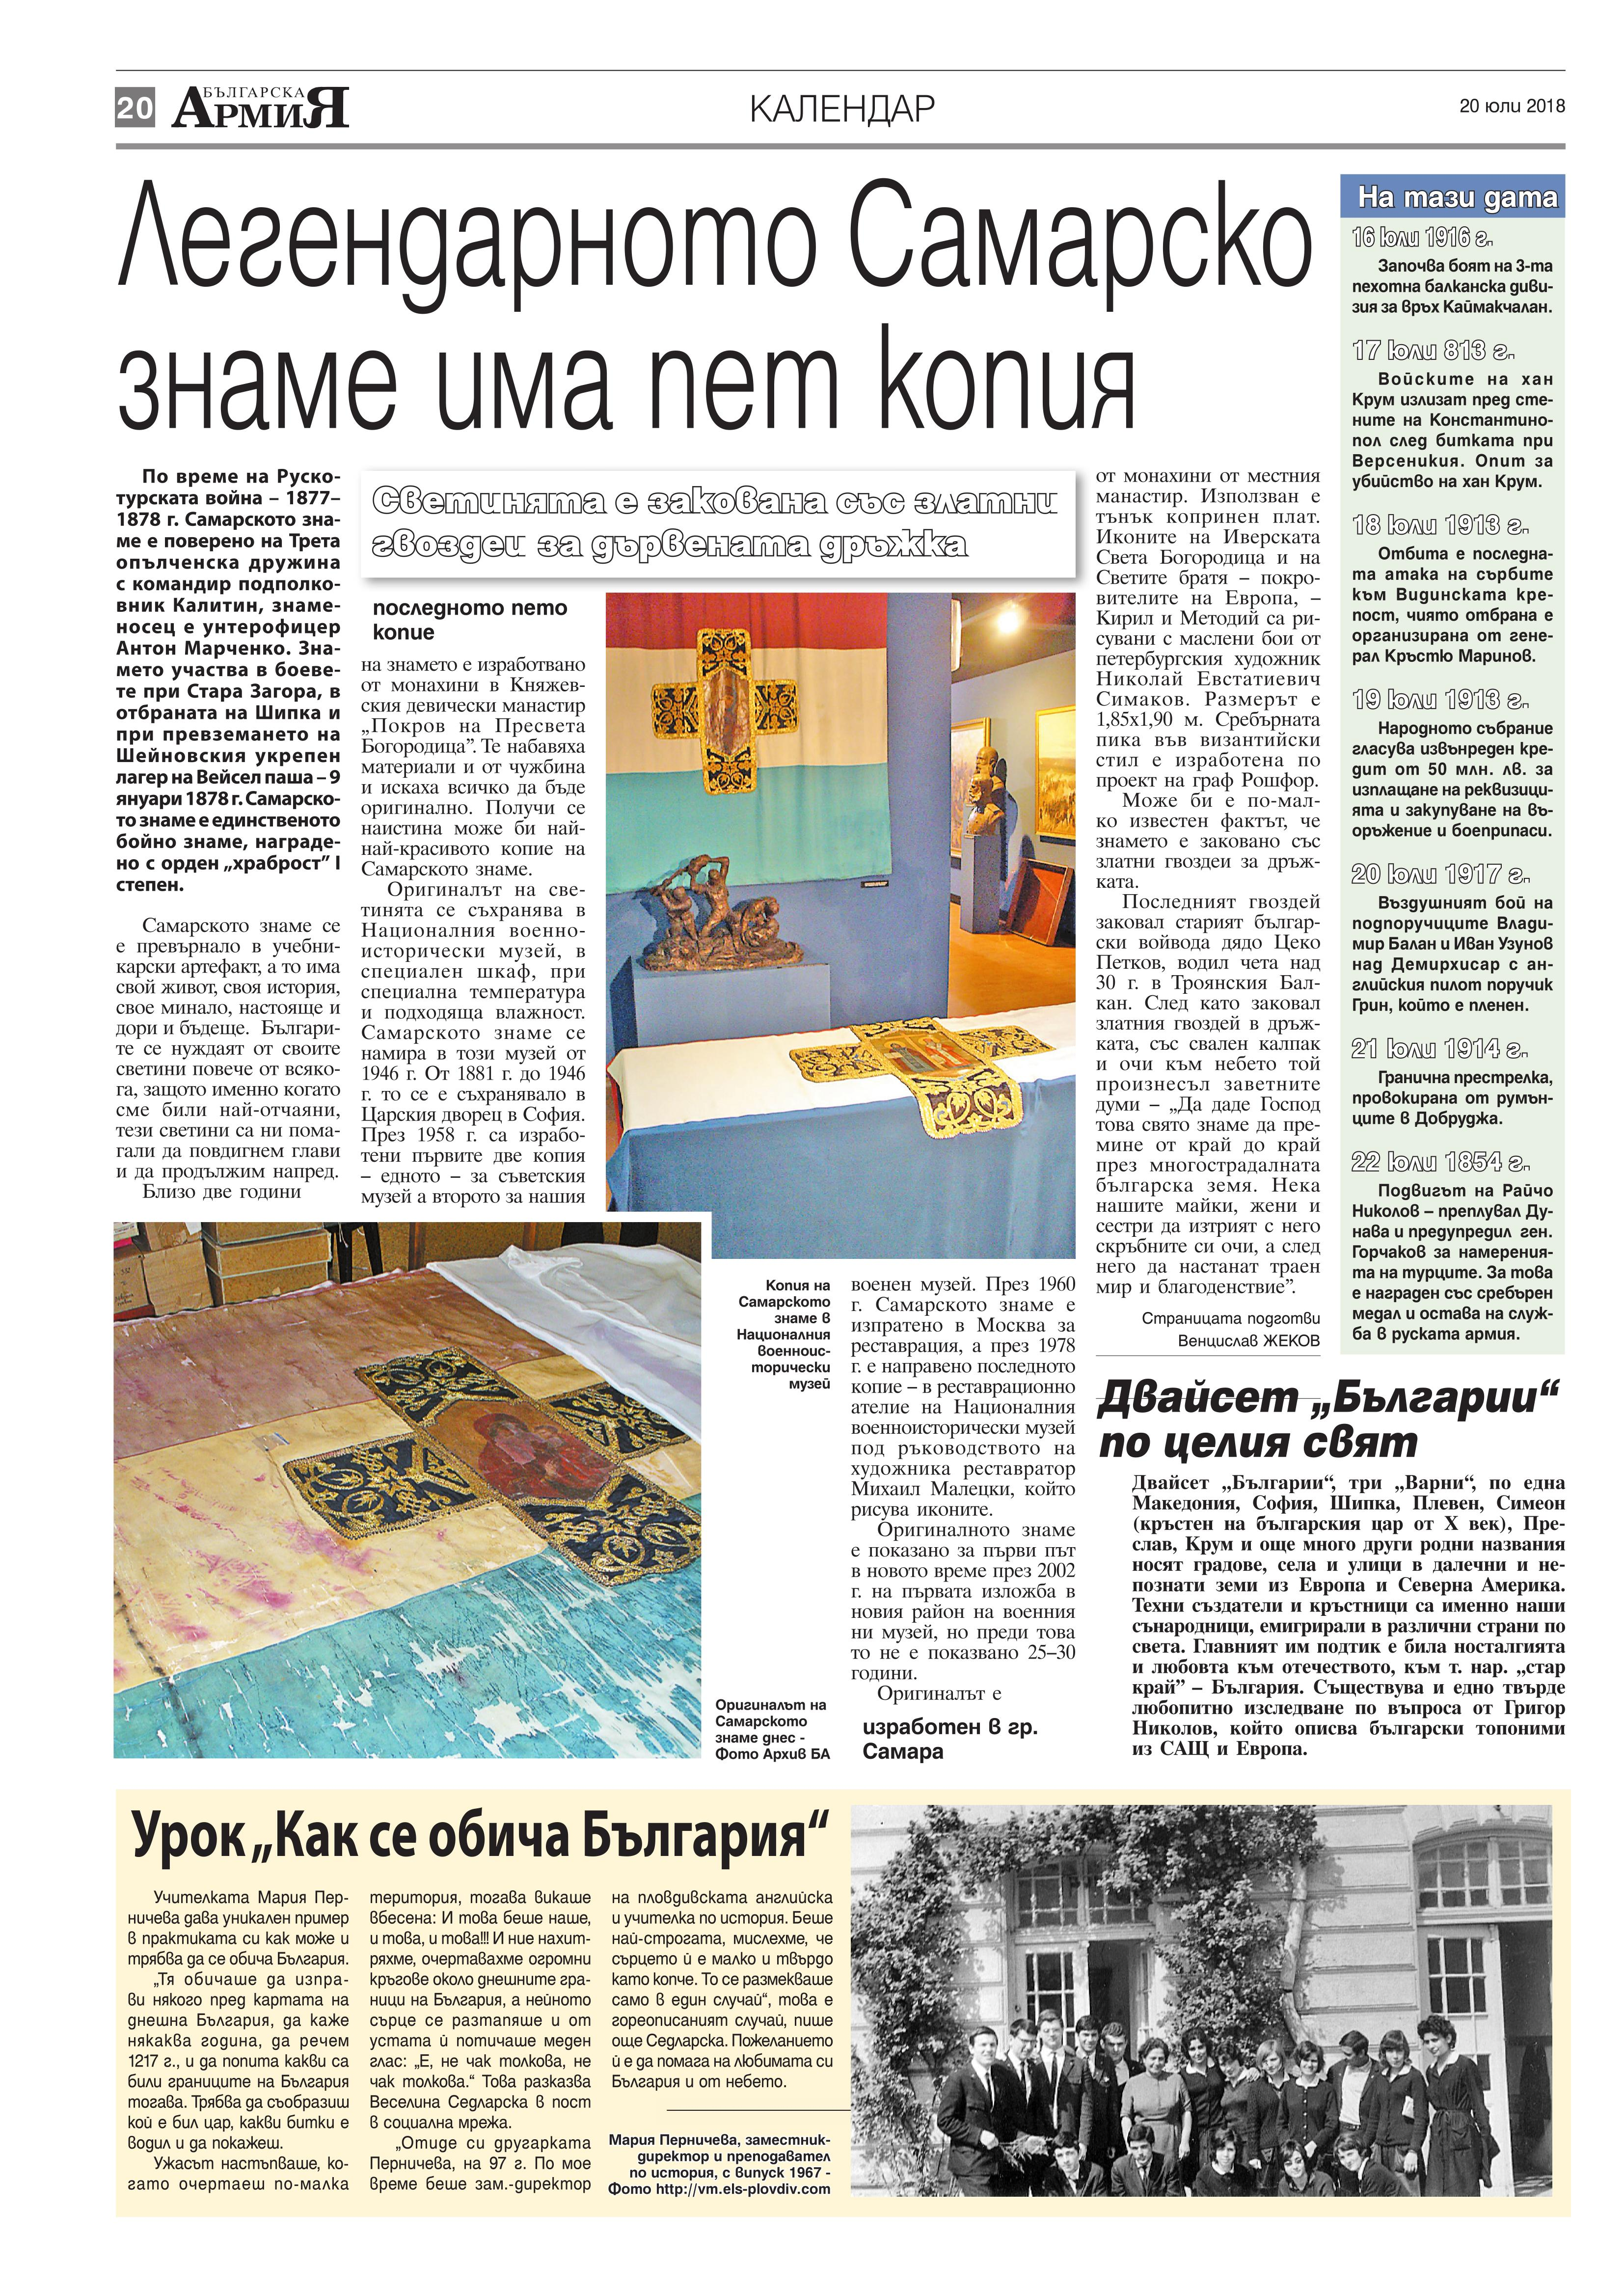 http://armymedia.bg/wp-content/uploads/2015/06/20.page1_-59.jpg